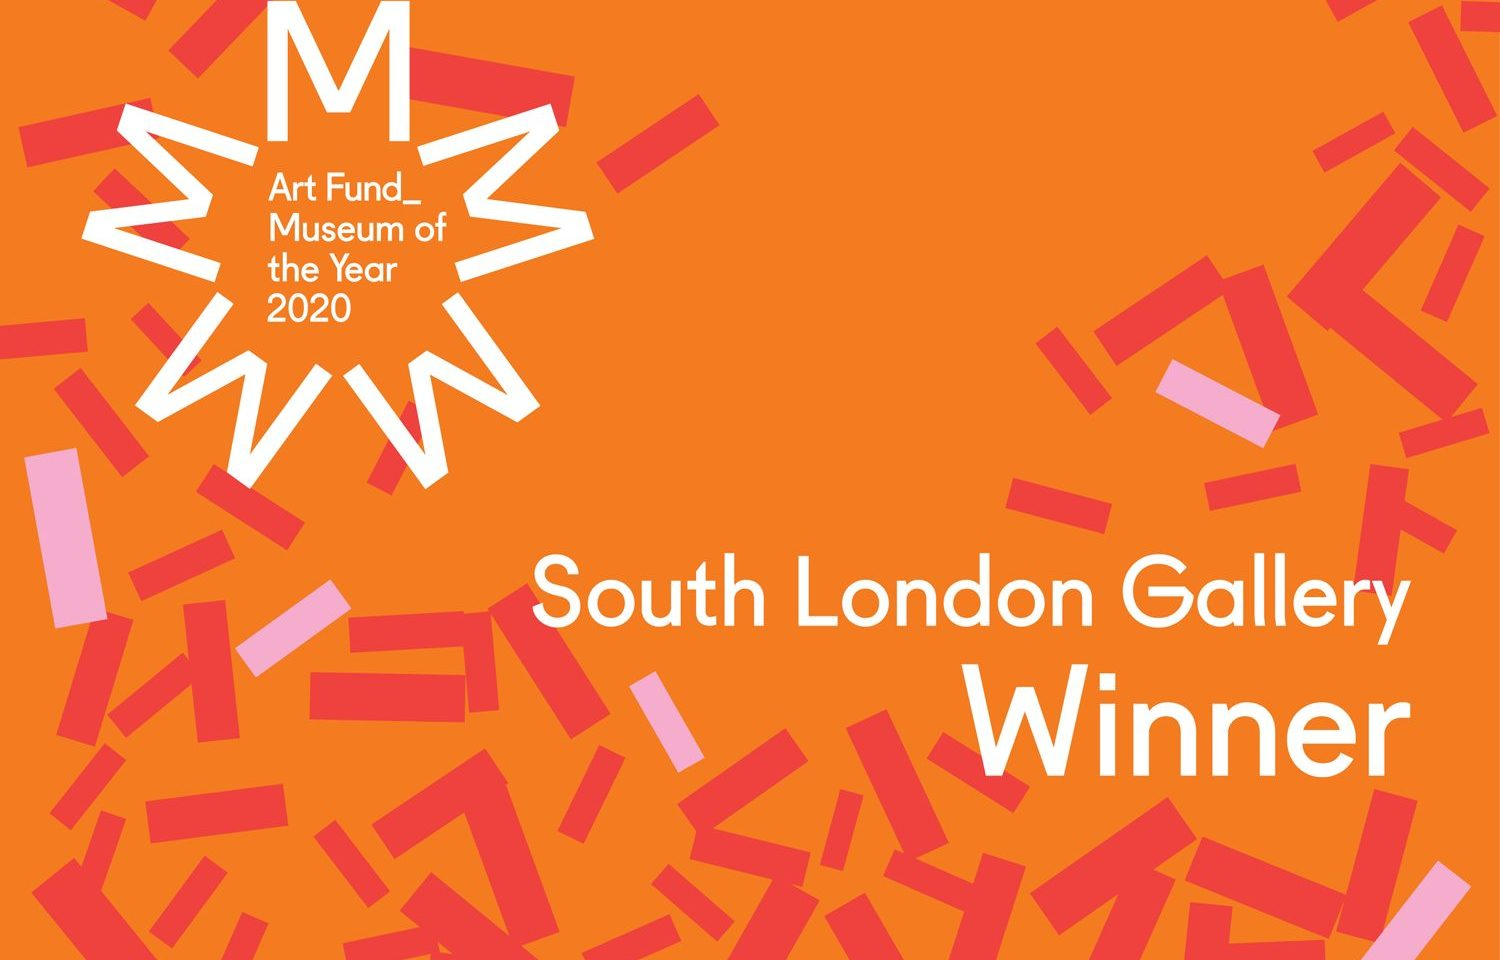 Art Fund Museum of the Year South London Gallery Winner graphic with confetti